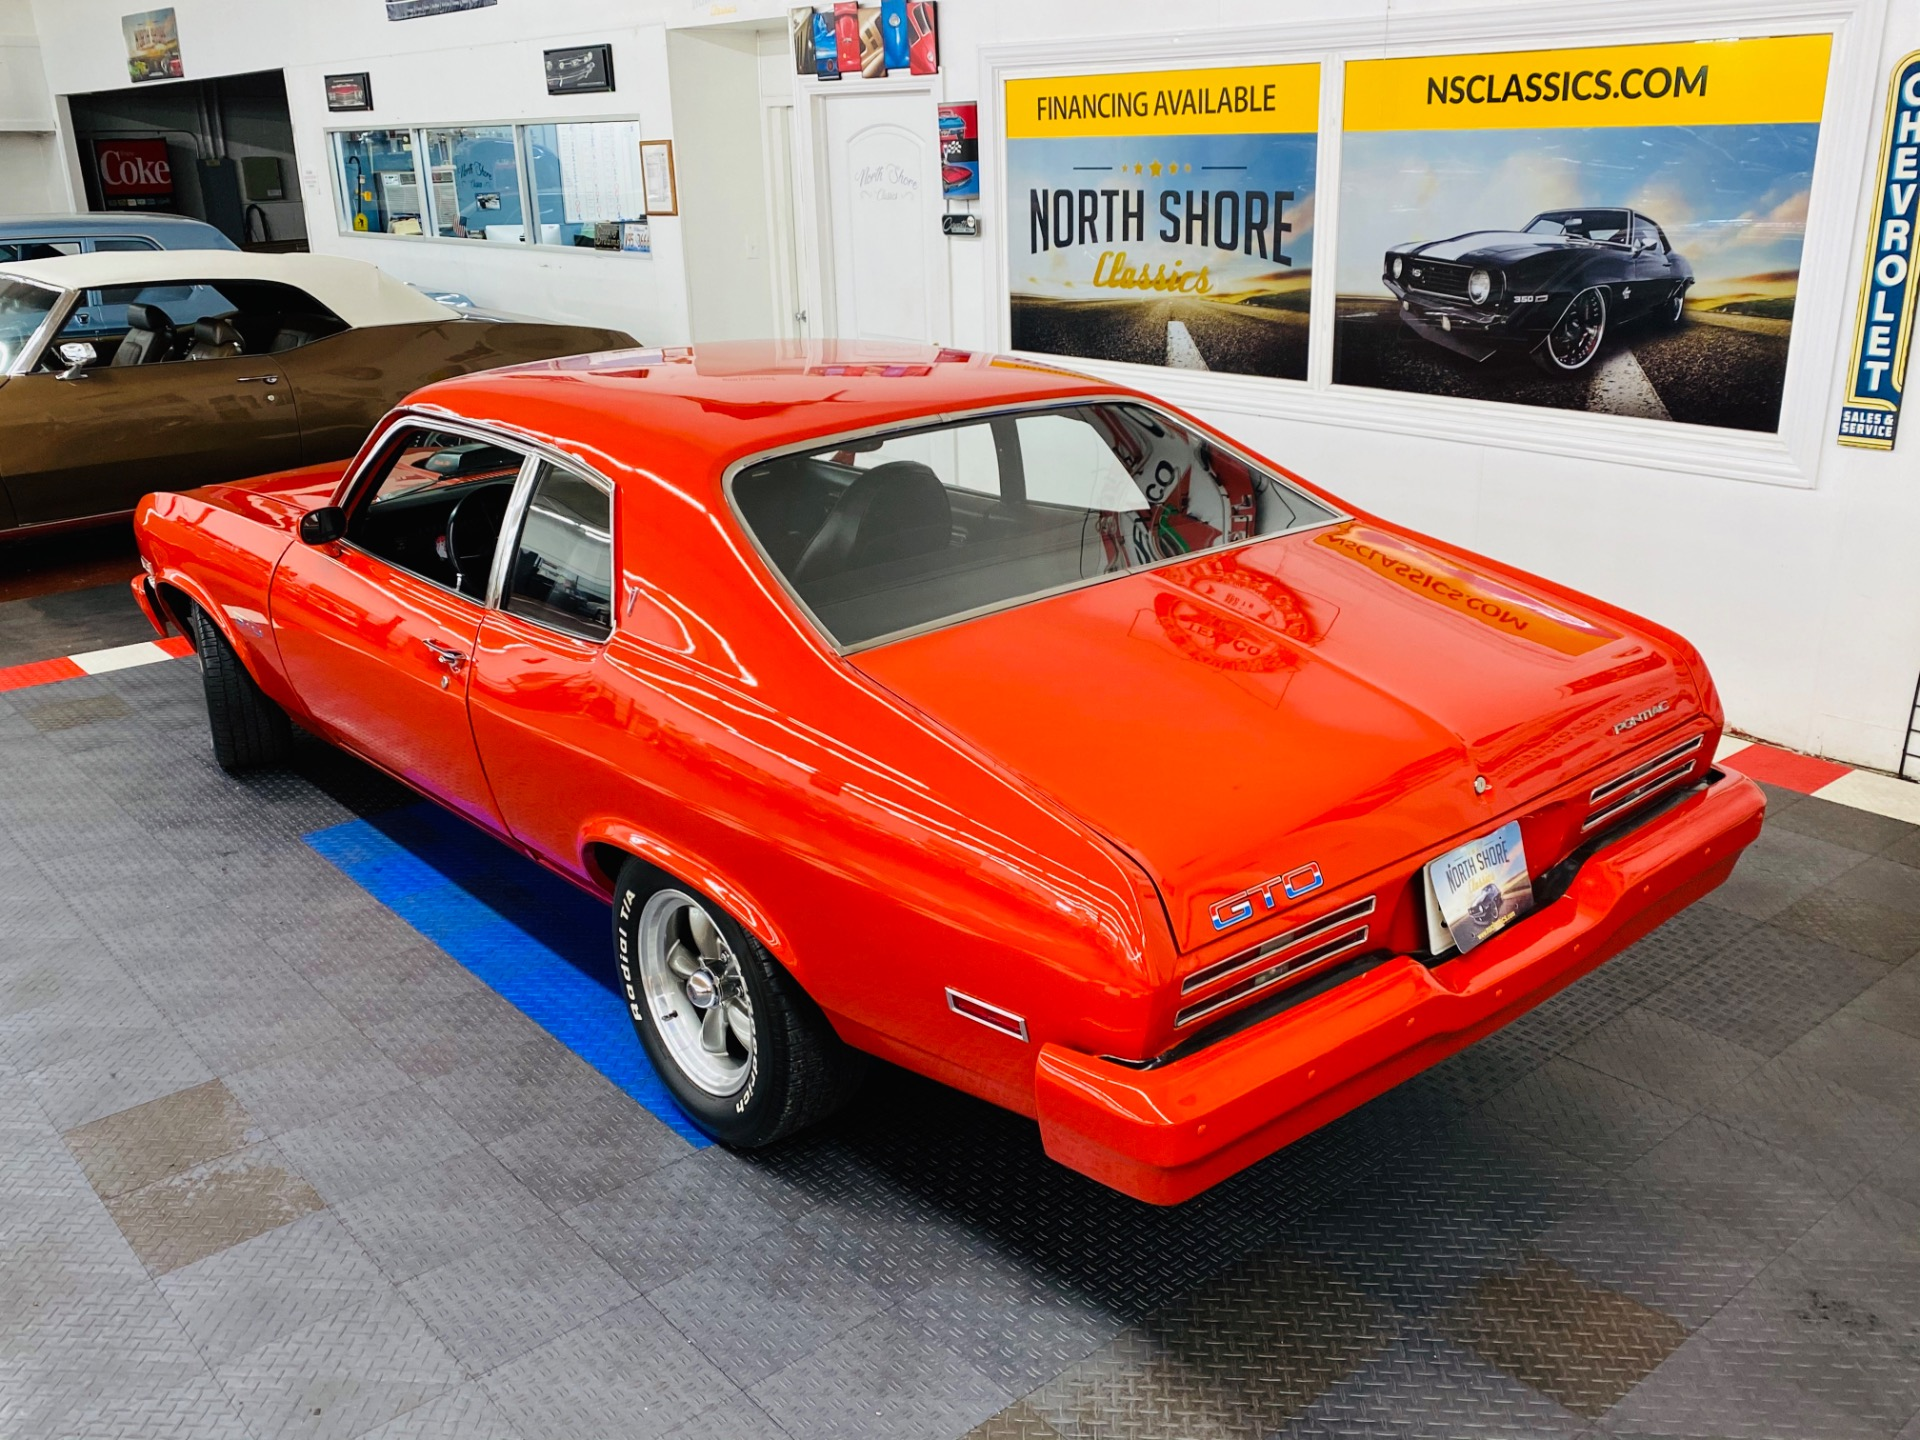 Used 1974 Pontiac GTO - RARE GTO - SUPER CLEAN - UPGRADED SUSPENSION - | Mundelein, IL